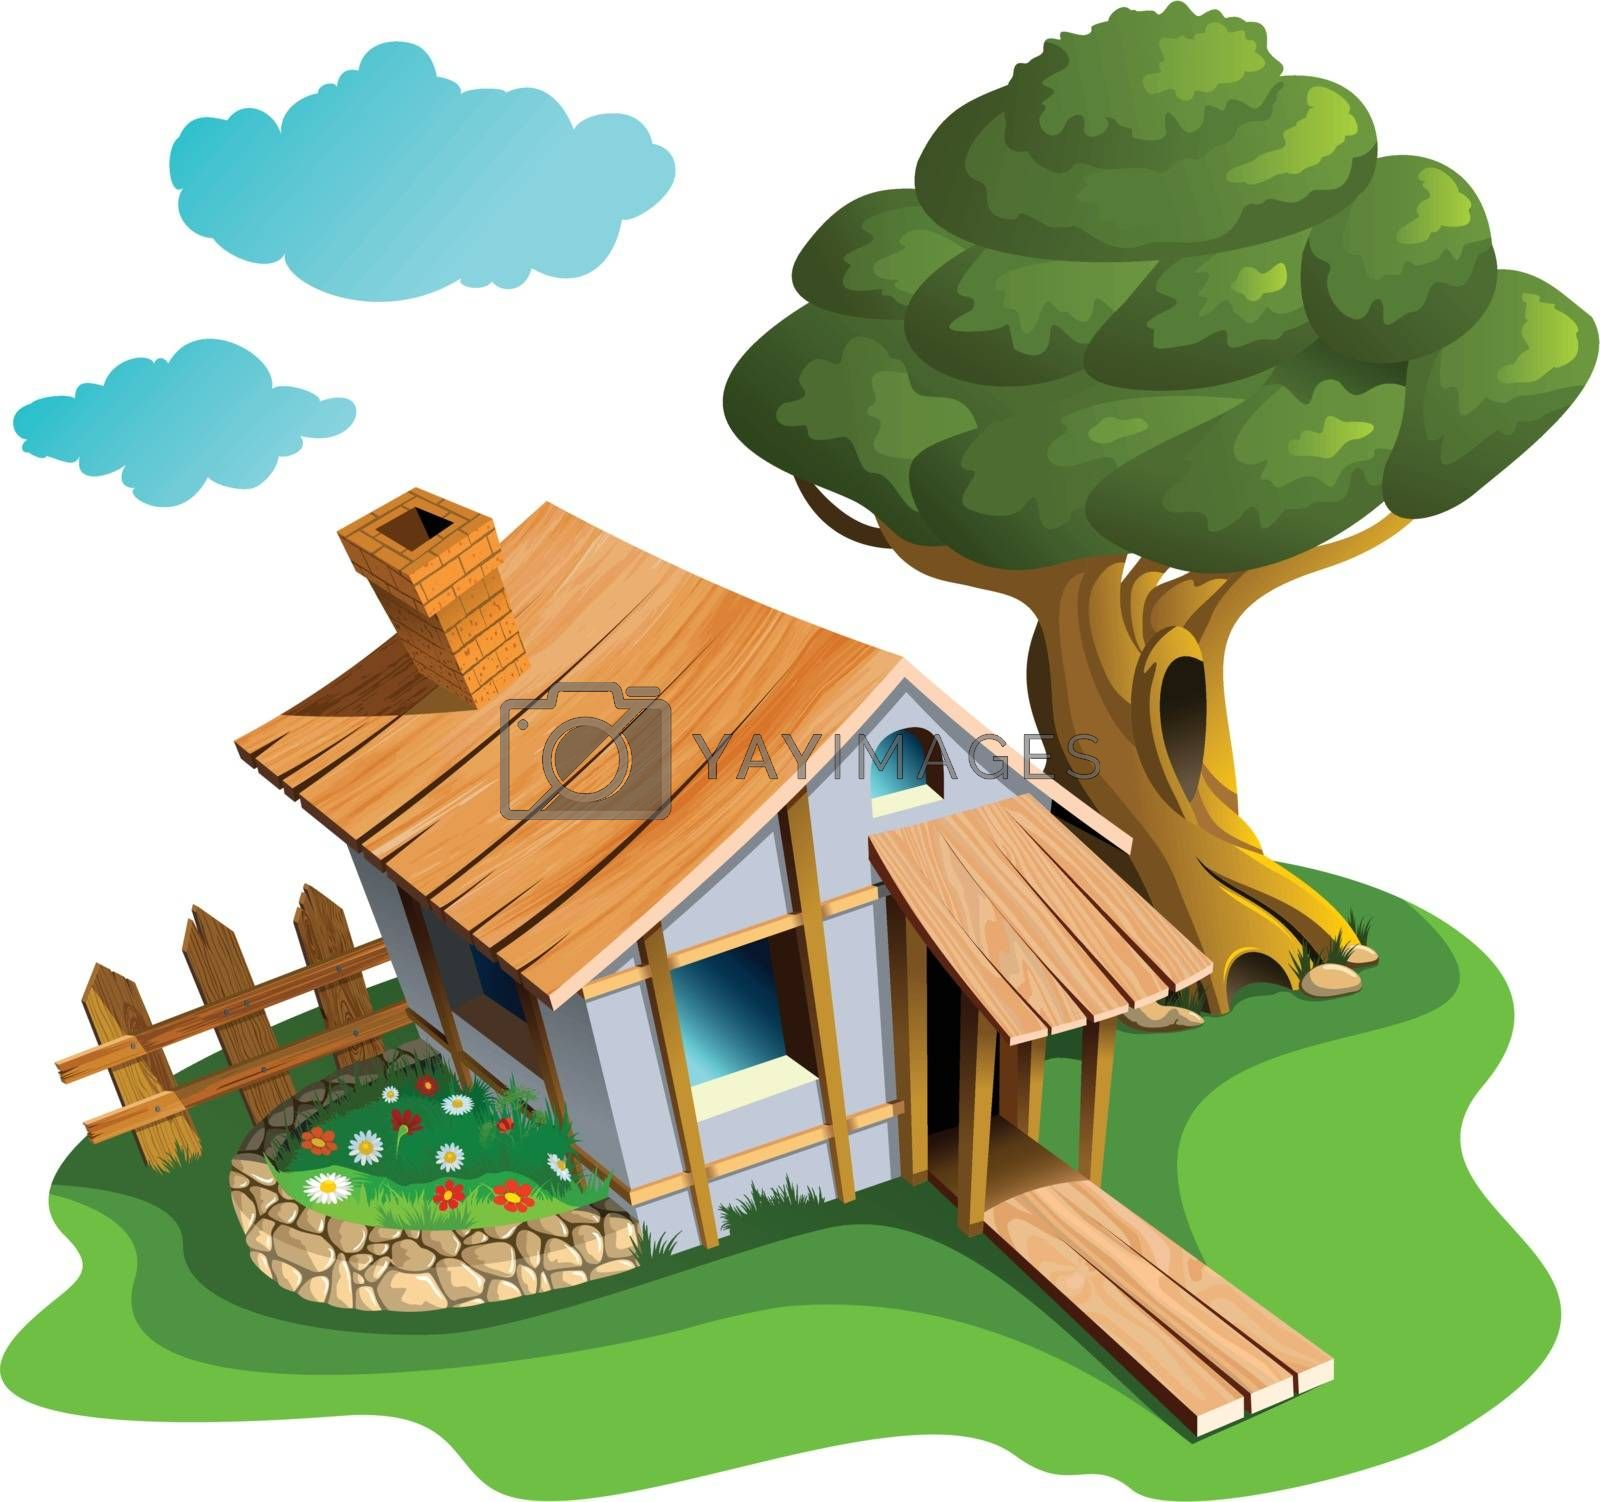 Small village house with flower bed and big tree, vector illustration